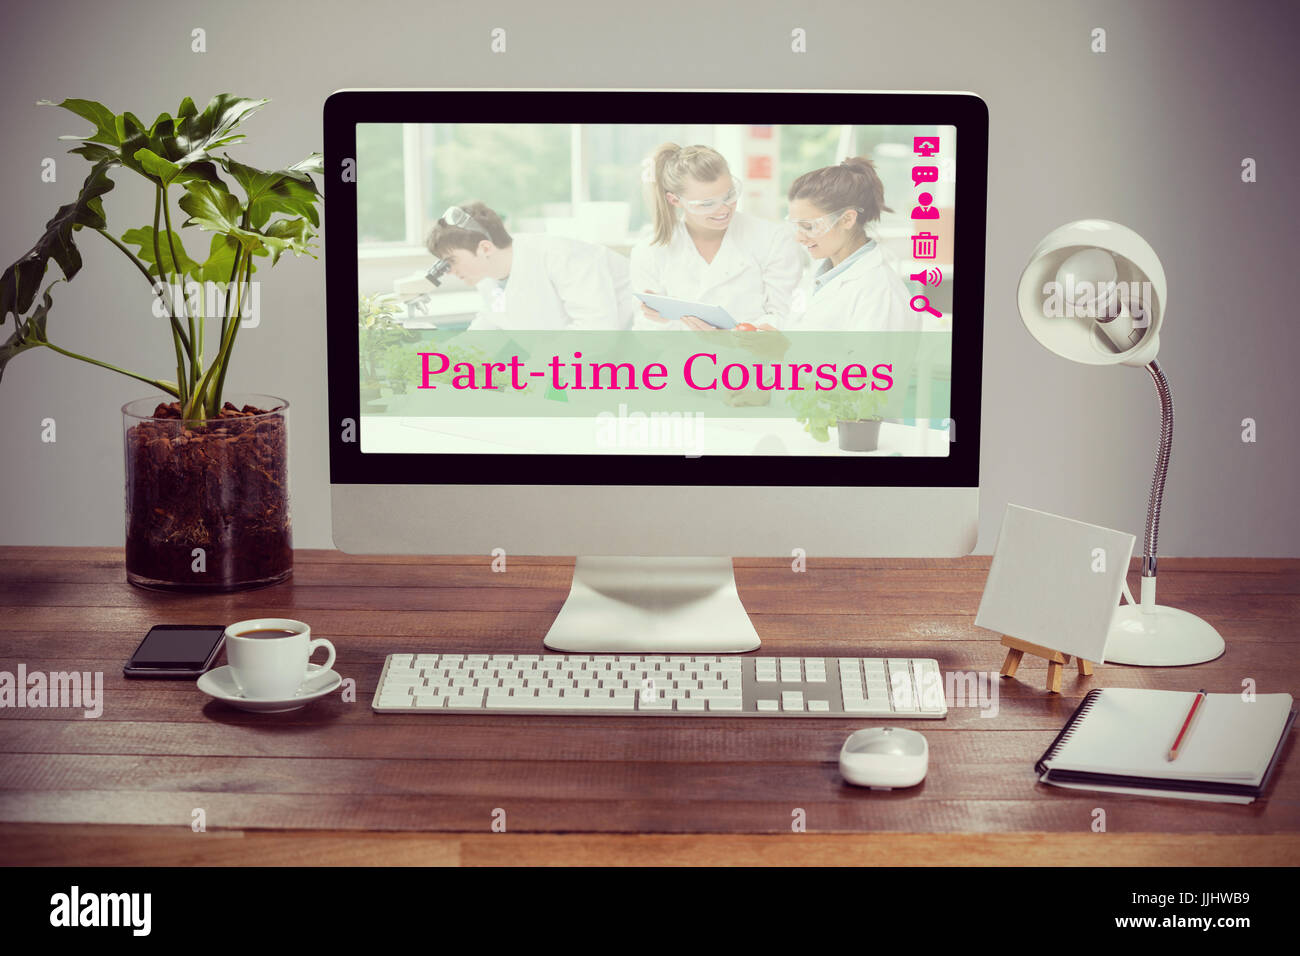 Composite image of part-time courses against computer with personal organizer and belongings - Stock Image